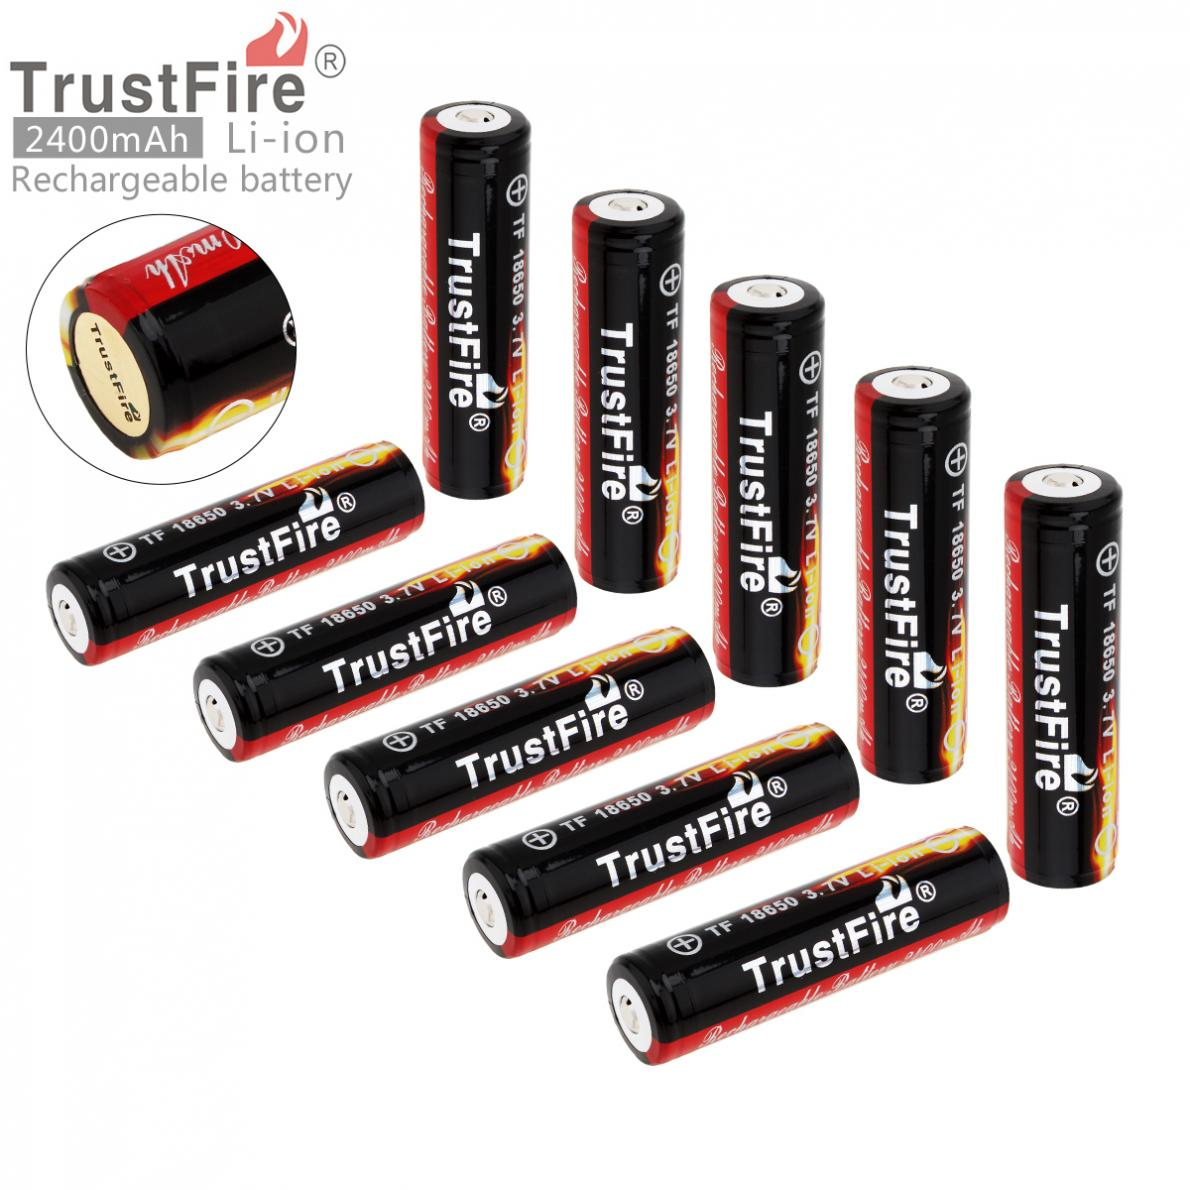 TrustFire 10pcs 3.7V 18650 2400mAh Li-ion Rechargeable Battery with Protected PCB for LED Flashlights Headlamps 2pcs trustfire 2400mah 3 7v 18650 lithium battery rechargeable li ion battery with protected pcb for led flashlight headlamp